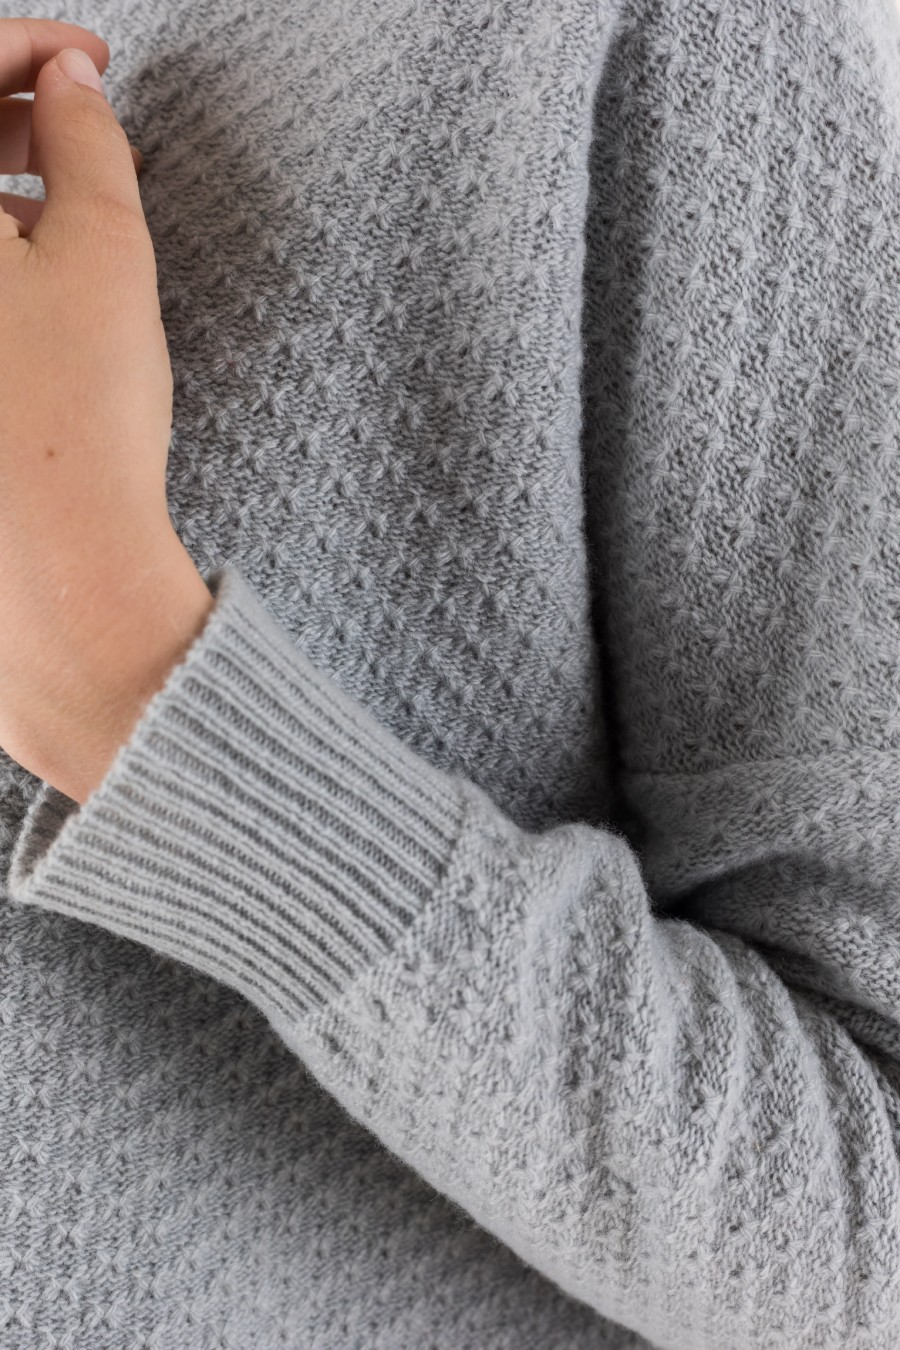 Wool comfy sweater